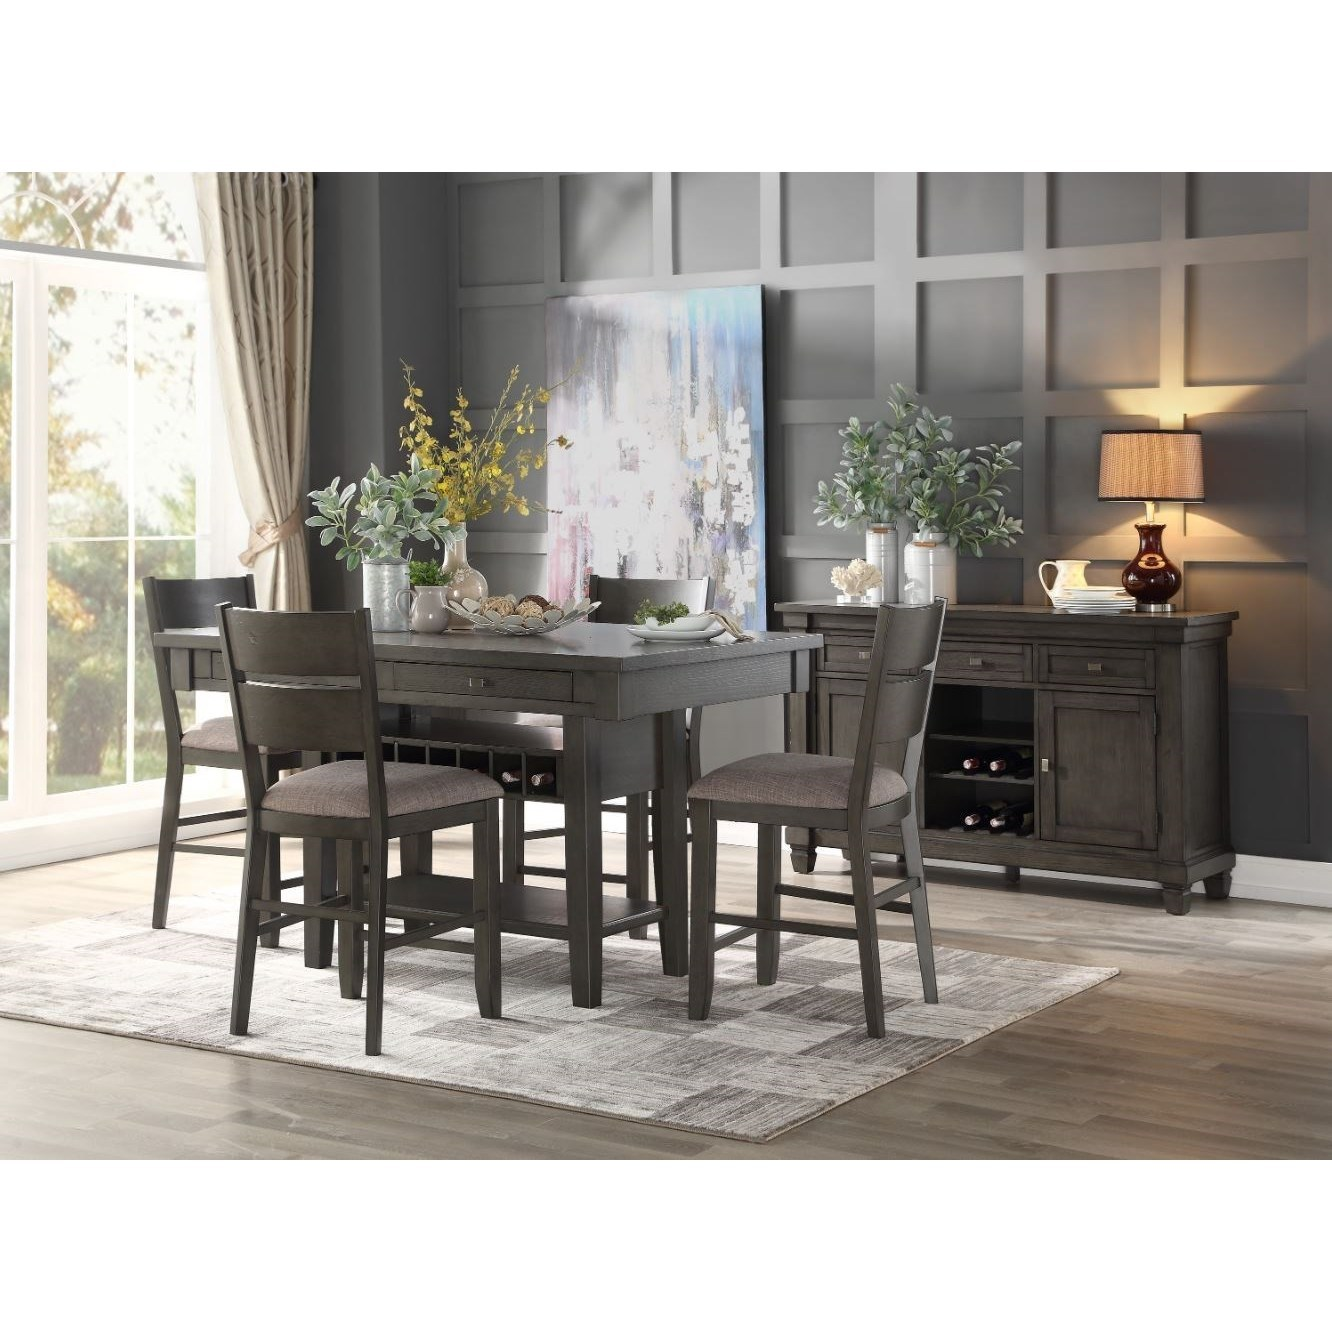 Baresford Casual Dining Room Group by Homelegance at Value City Furniture